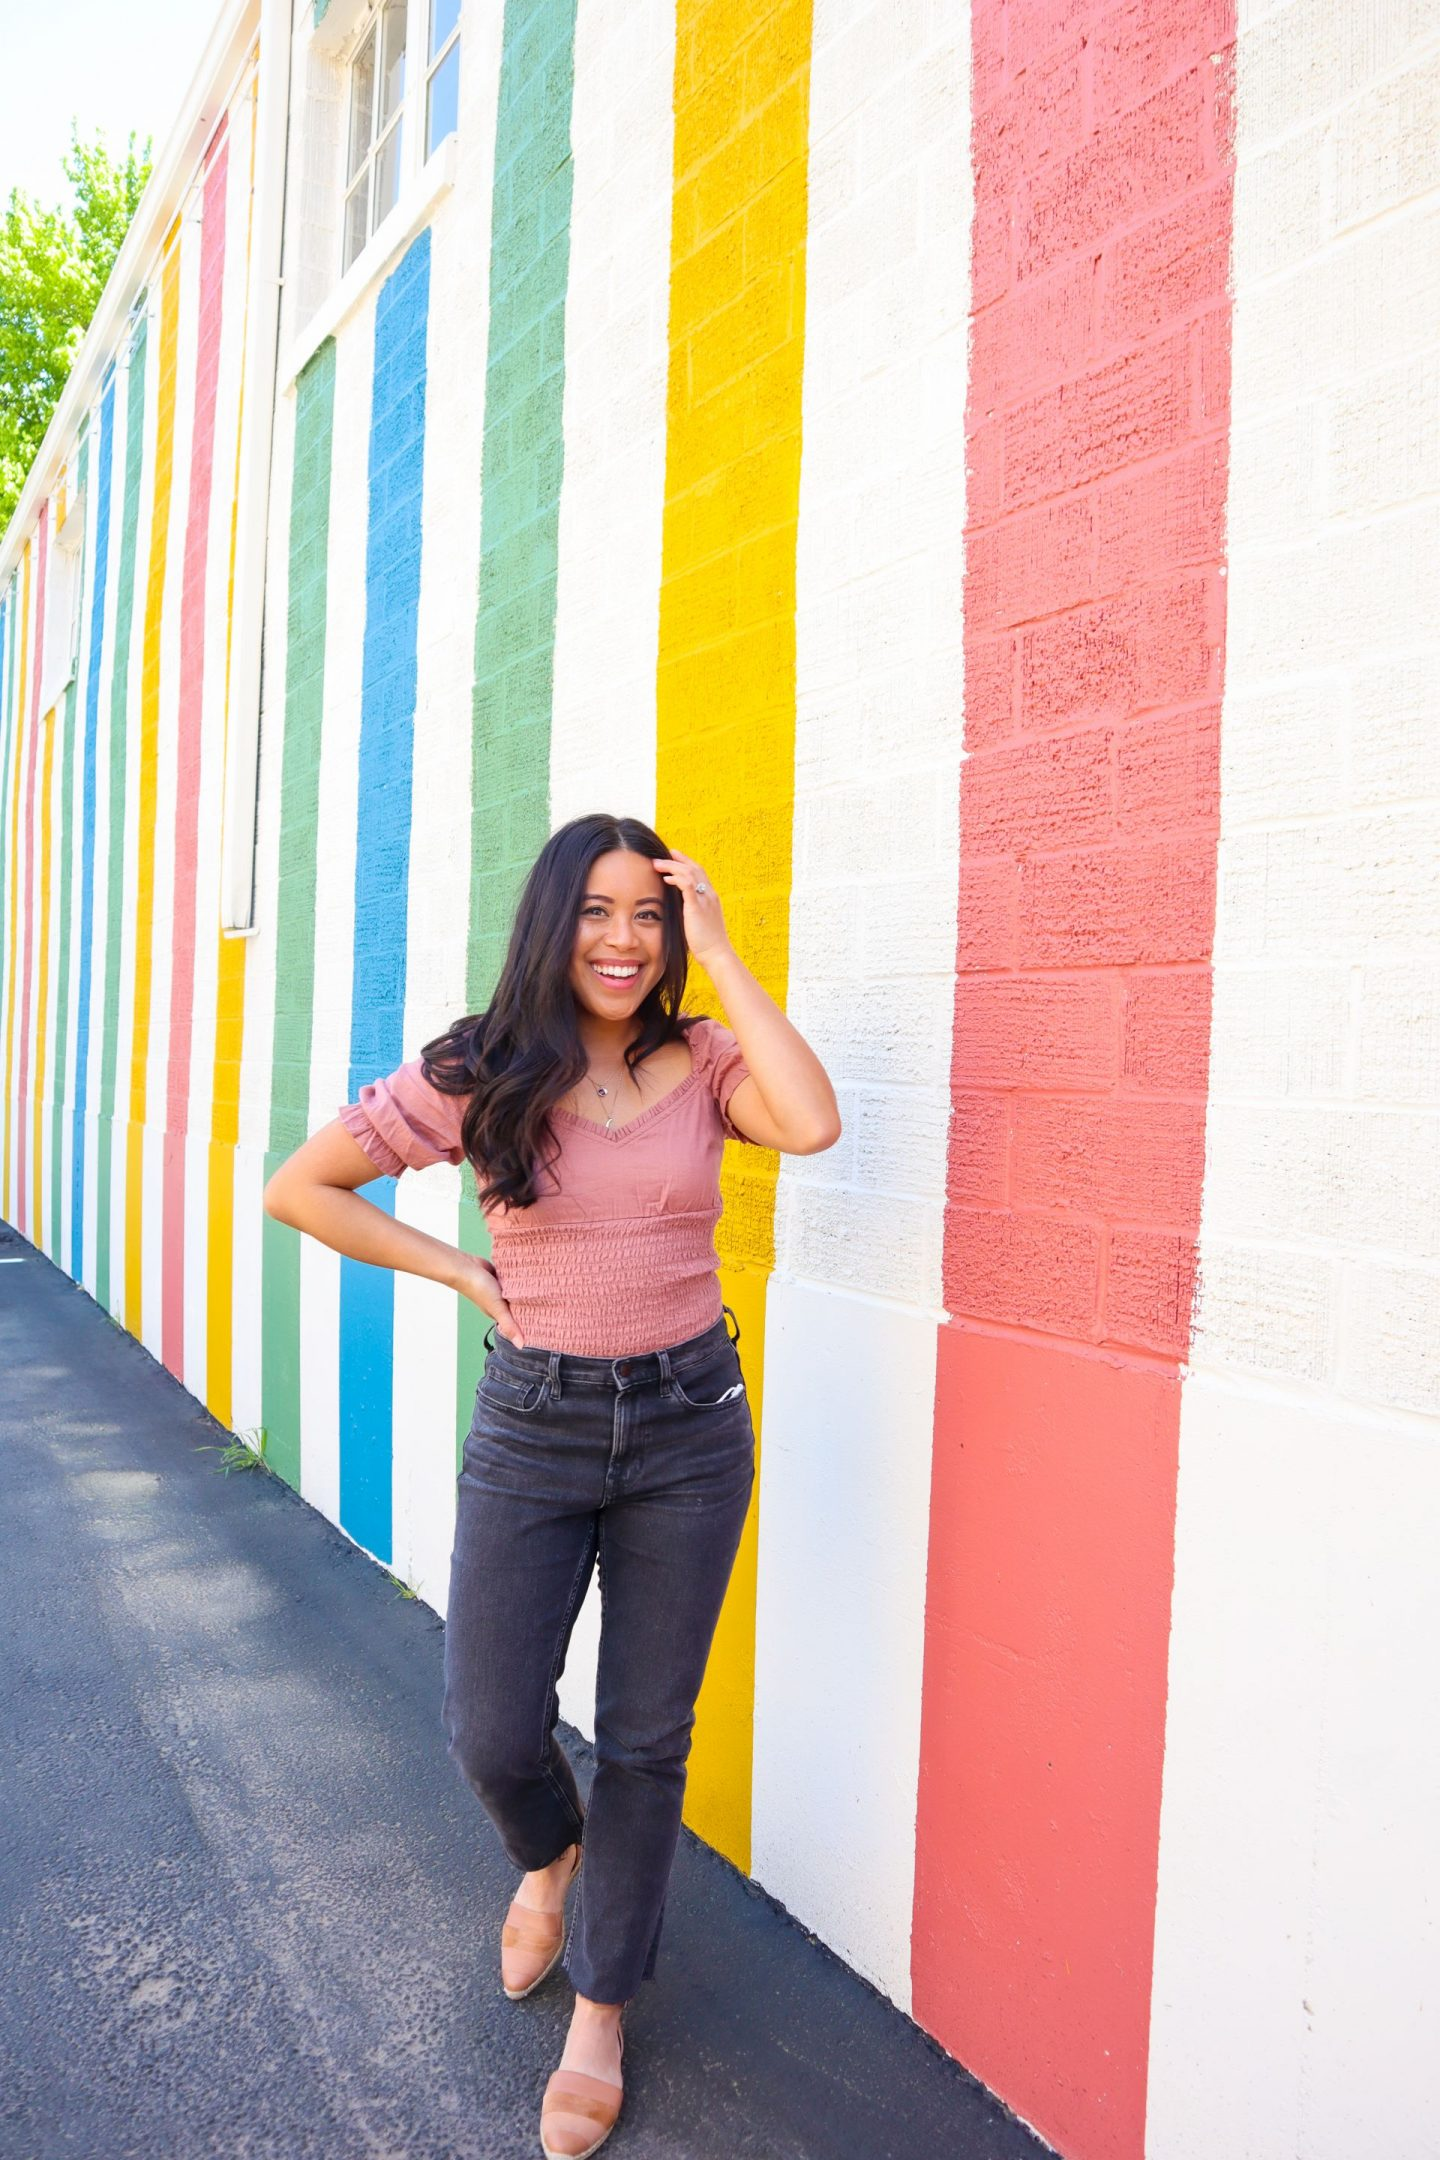 Pavement Austin - Colorful striped mural - image from Emma's Edition